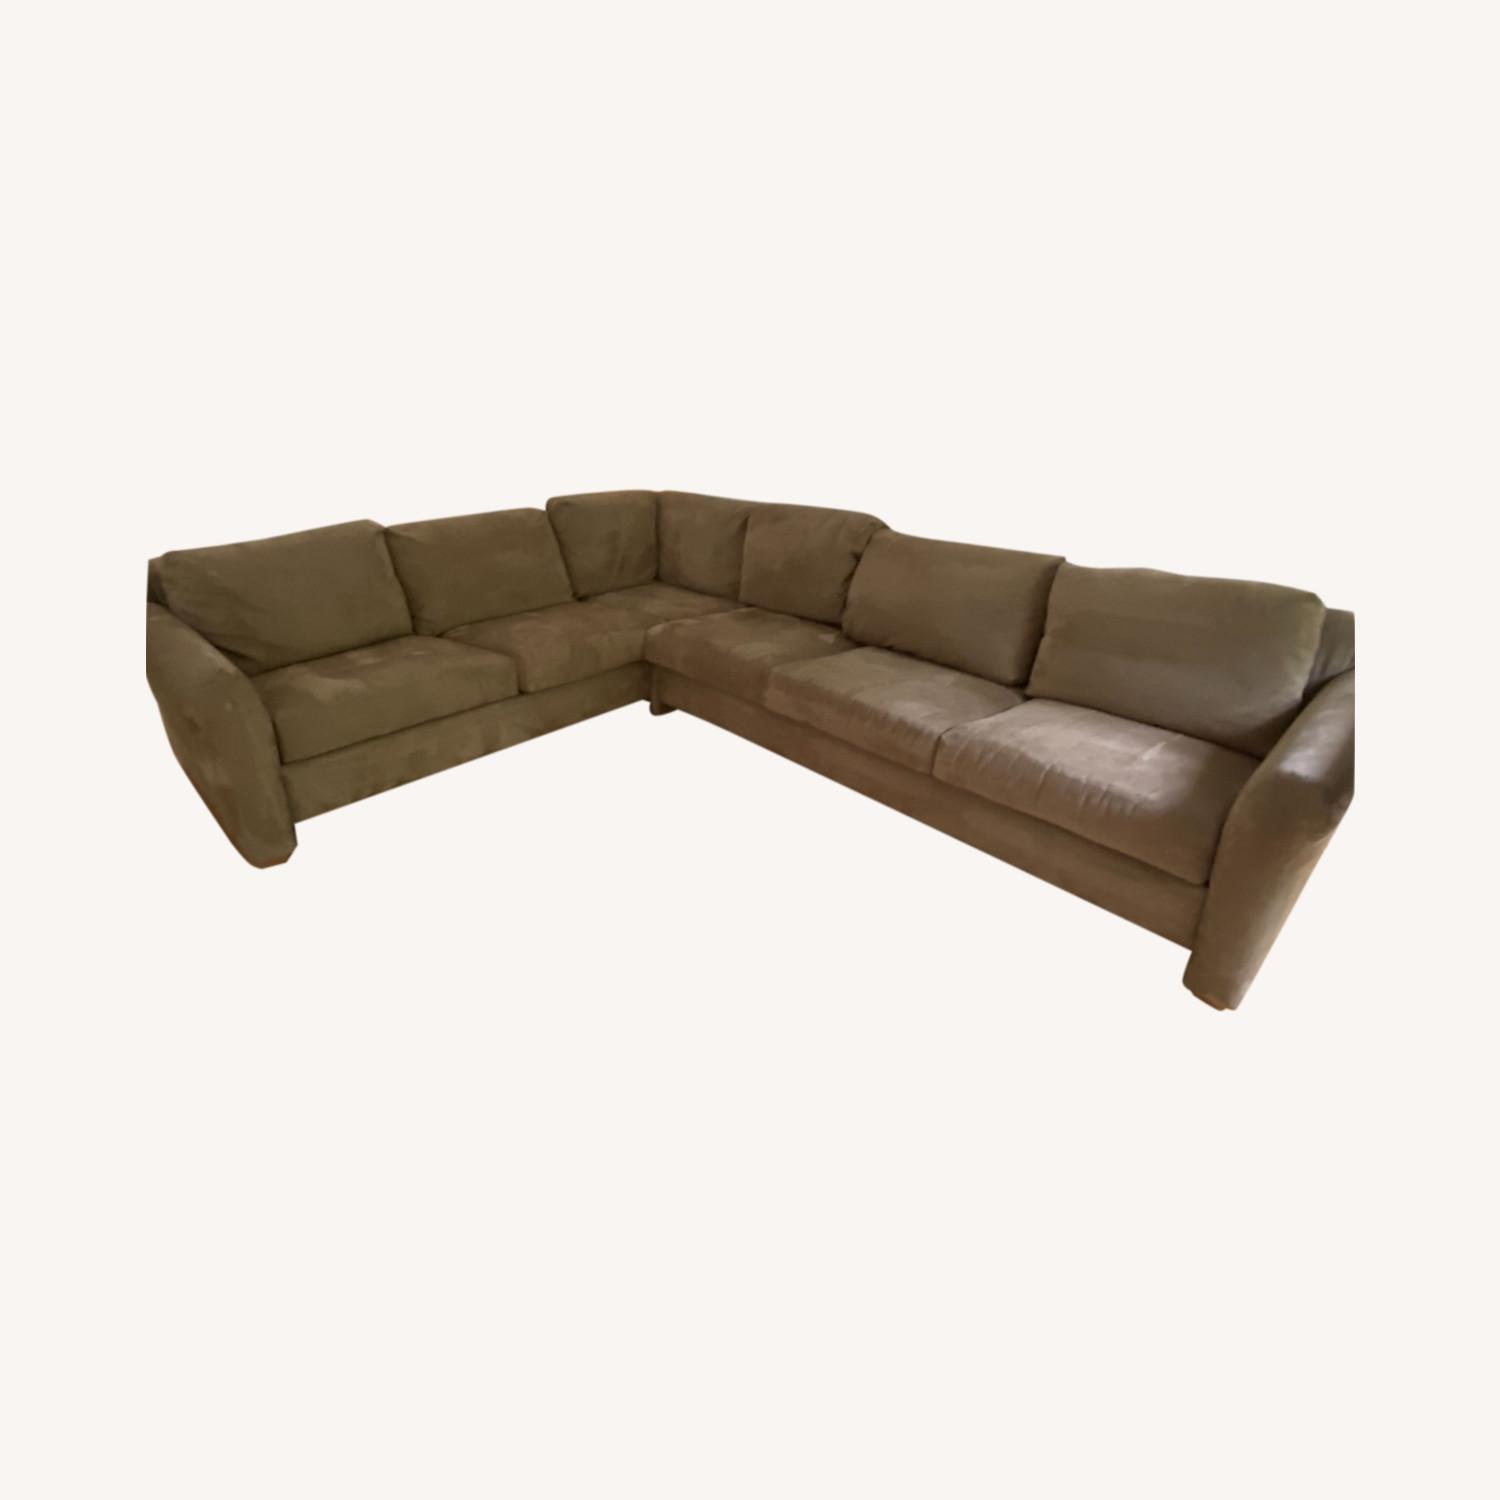 Pompy Suede 5 Cushion Sectional - image-0